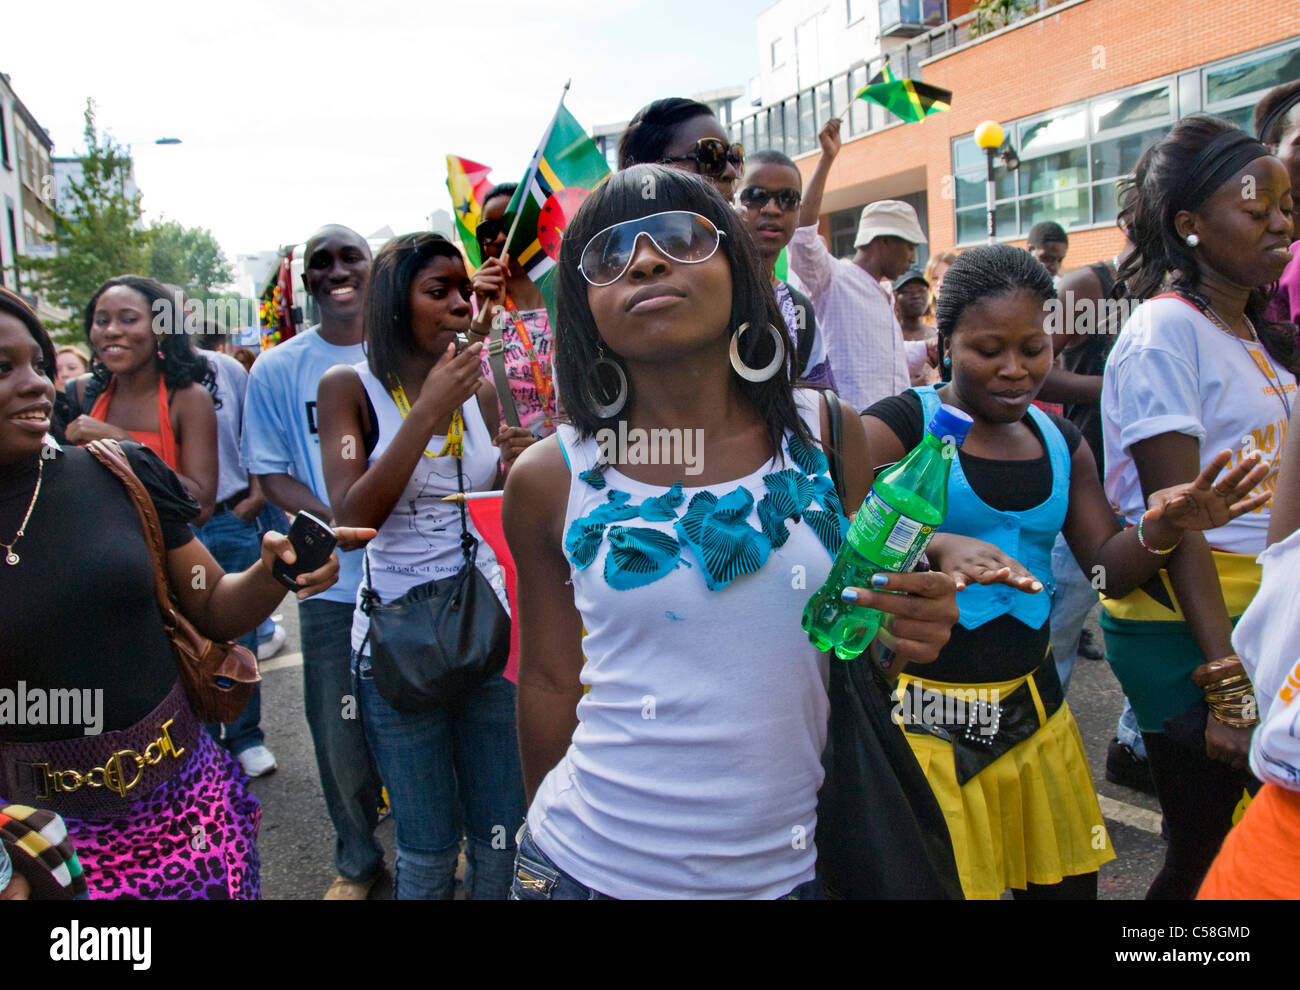 People heading towards Notting Hill Carnival - Stock Image